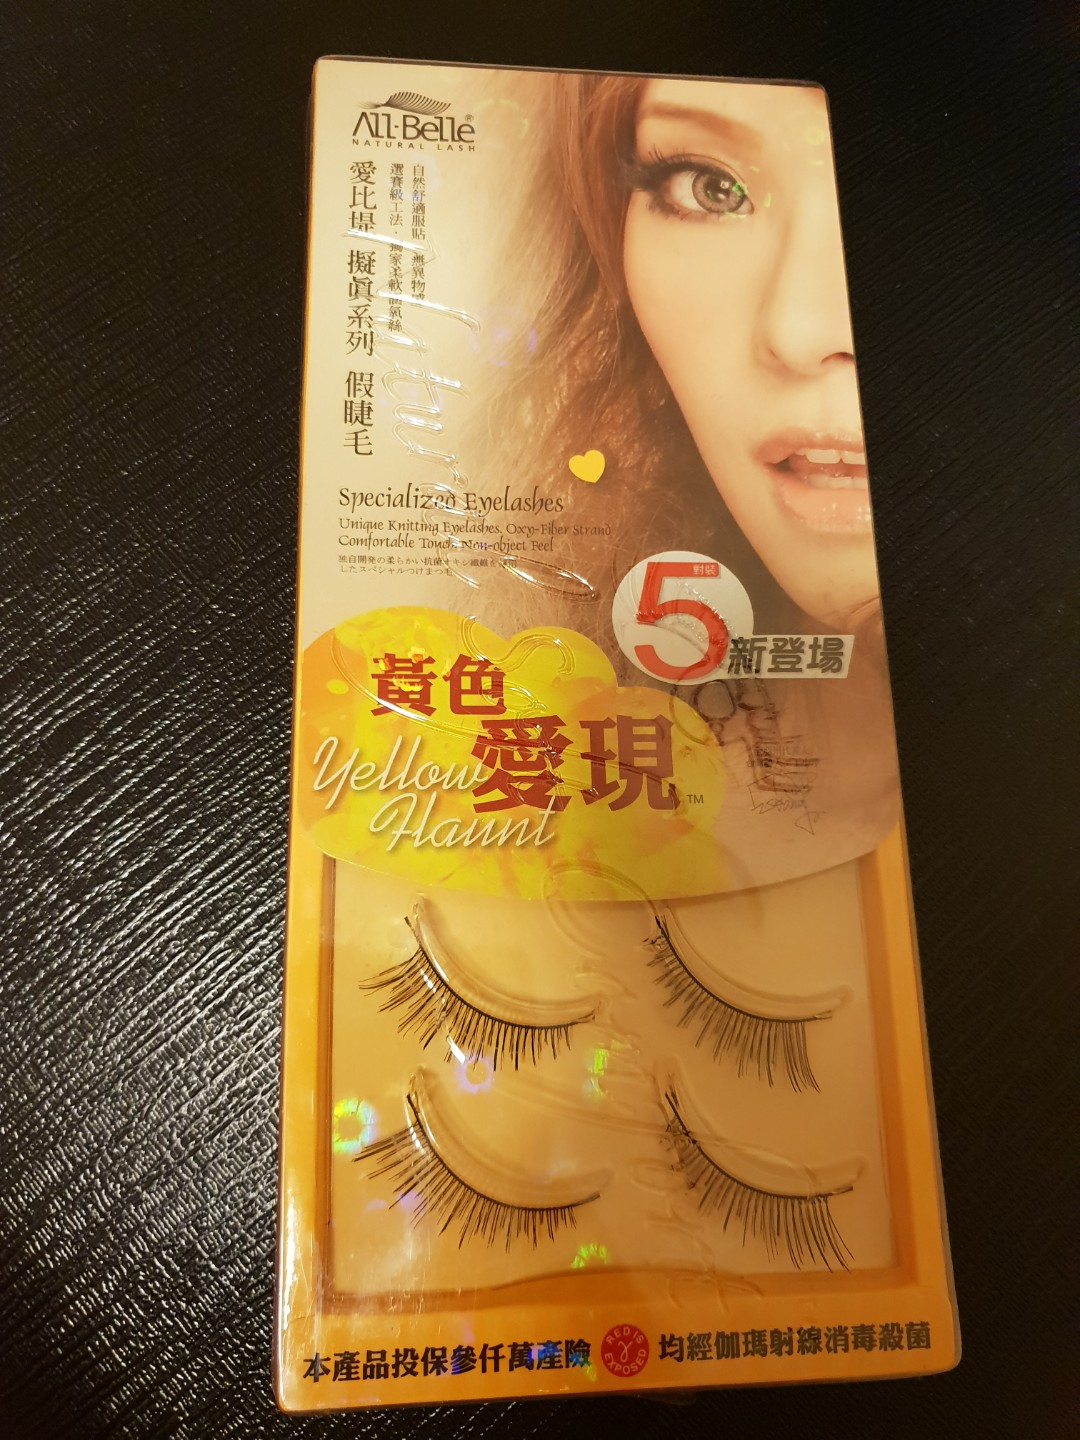 b9318abf3bc All-Belle Natural False Eyelashes - Yellow Haunt, Health & Beauty ...